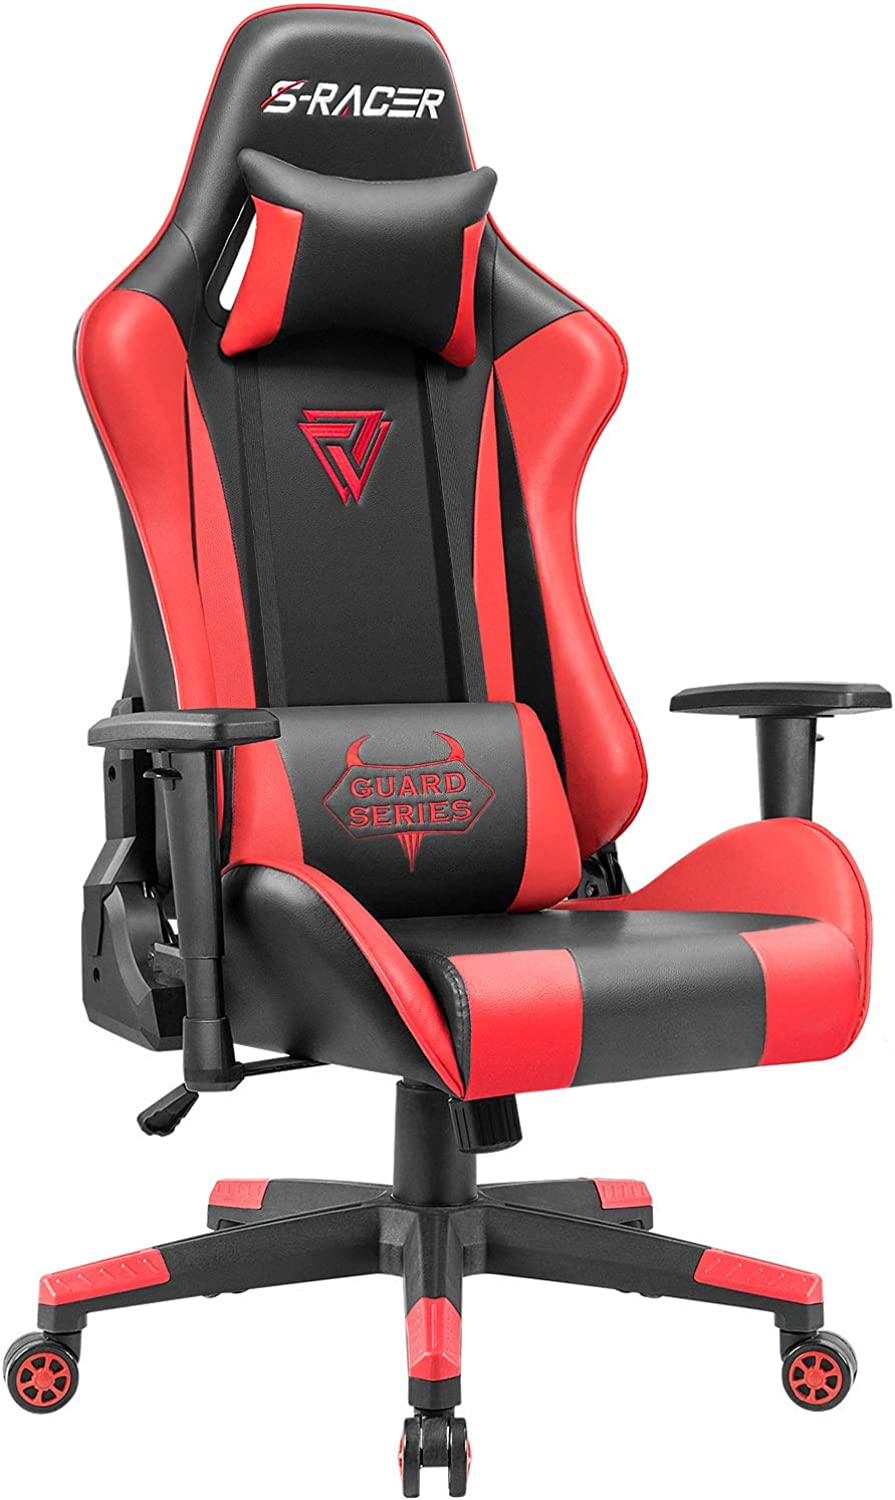 Homall Racing Gaming Chair Ergonomic High-Back Chair Premium PU Leather Bucket Seat,Computer Swivel Lumbar Support Executive Office Chair (Red)